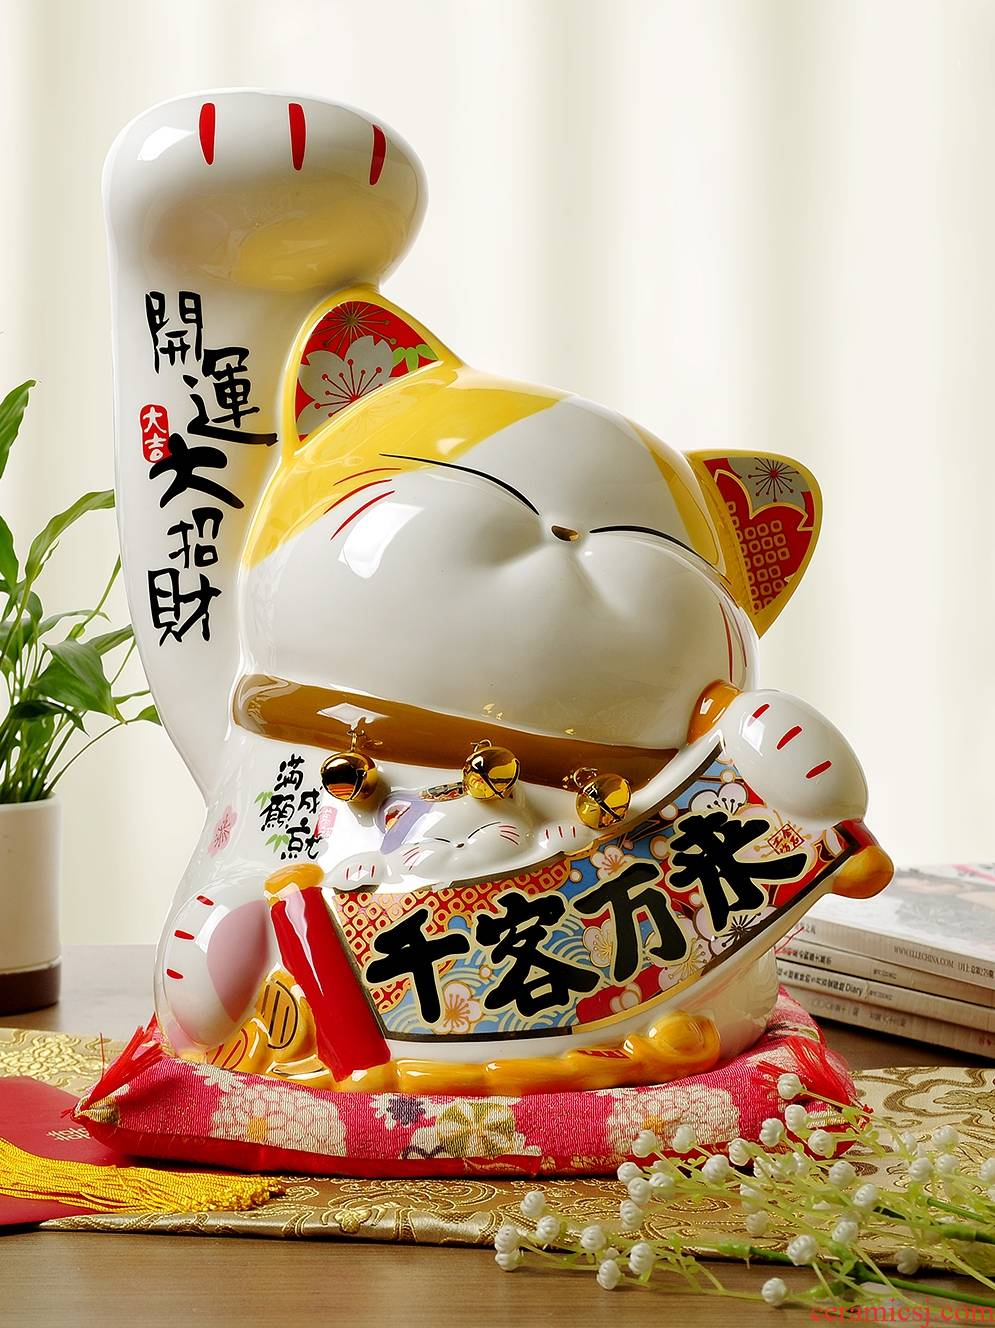 Stone workshop plutus cat ceramic company in the opened shops that occupy the home furnishing articles furnishing articles extra large gifts